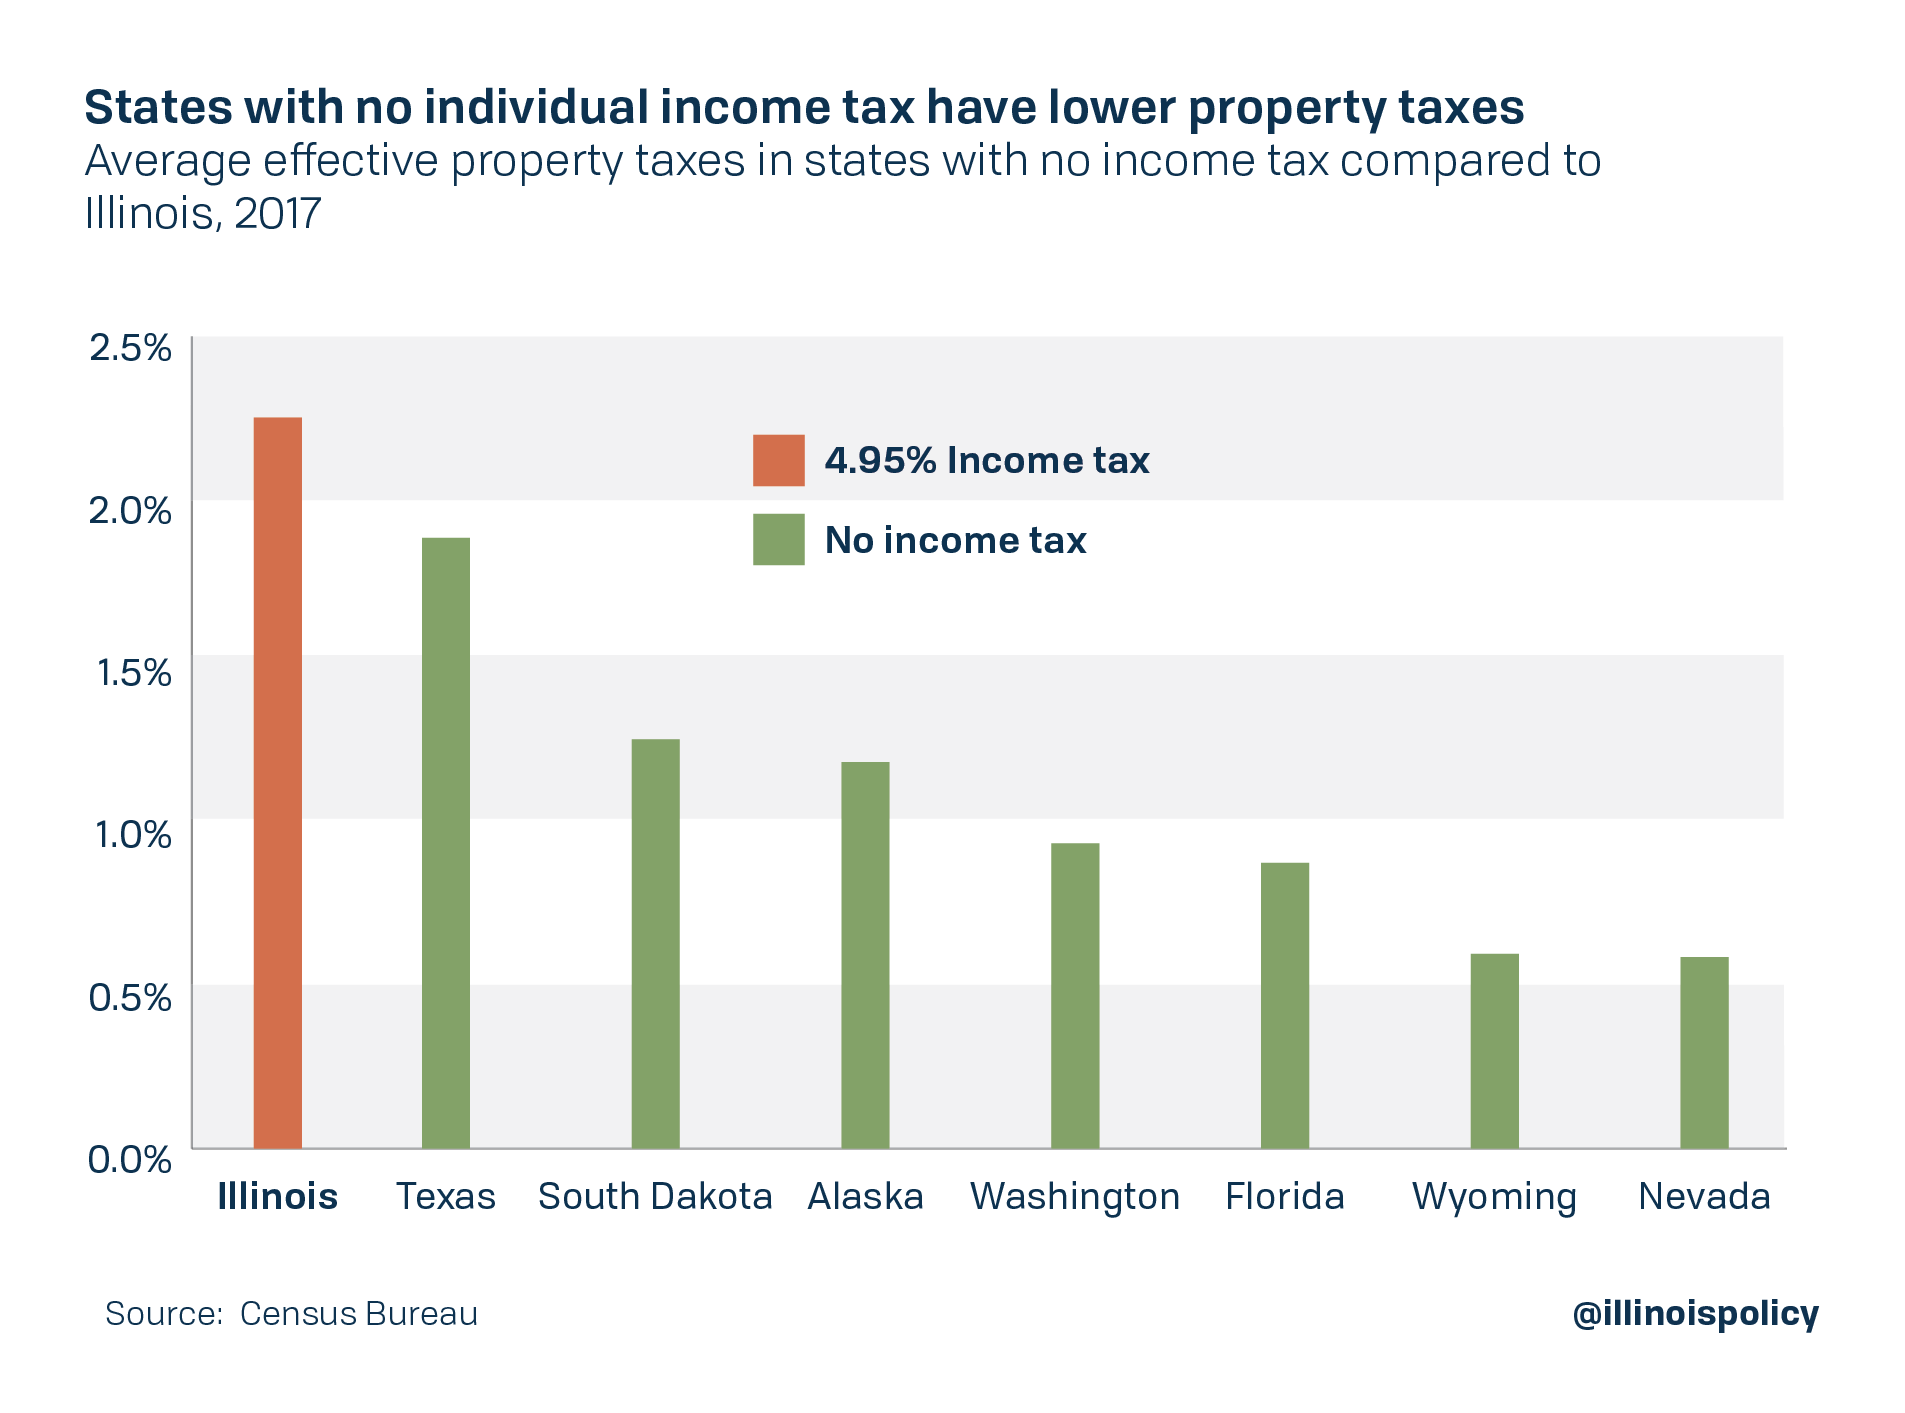 States with no individual income tax have lower property taxes